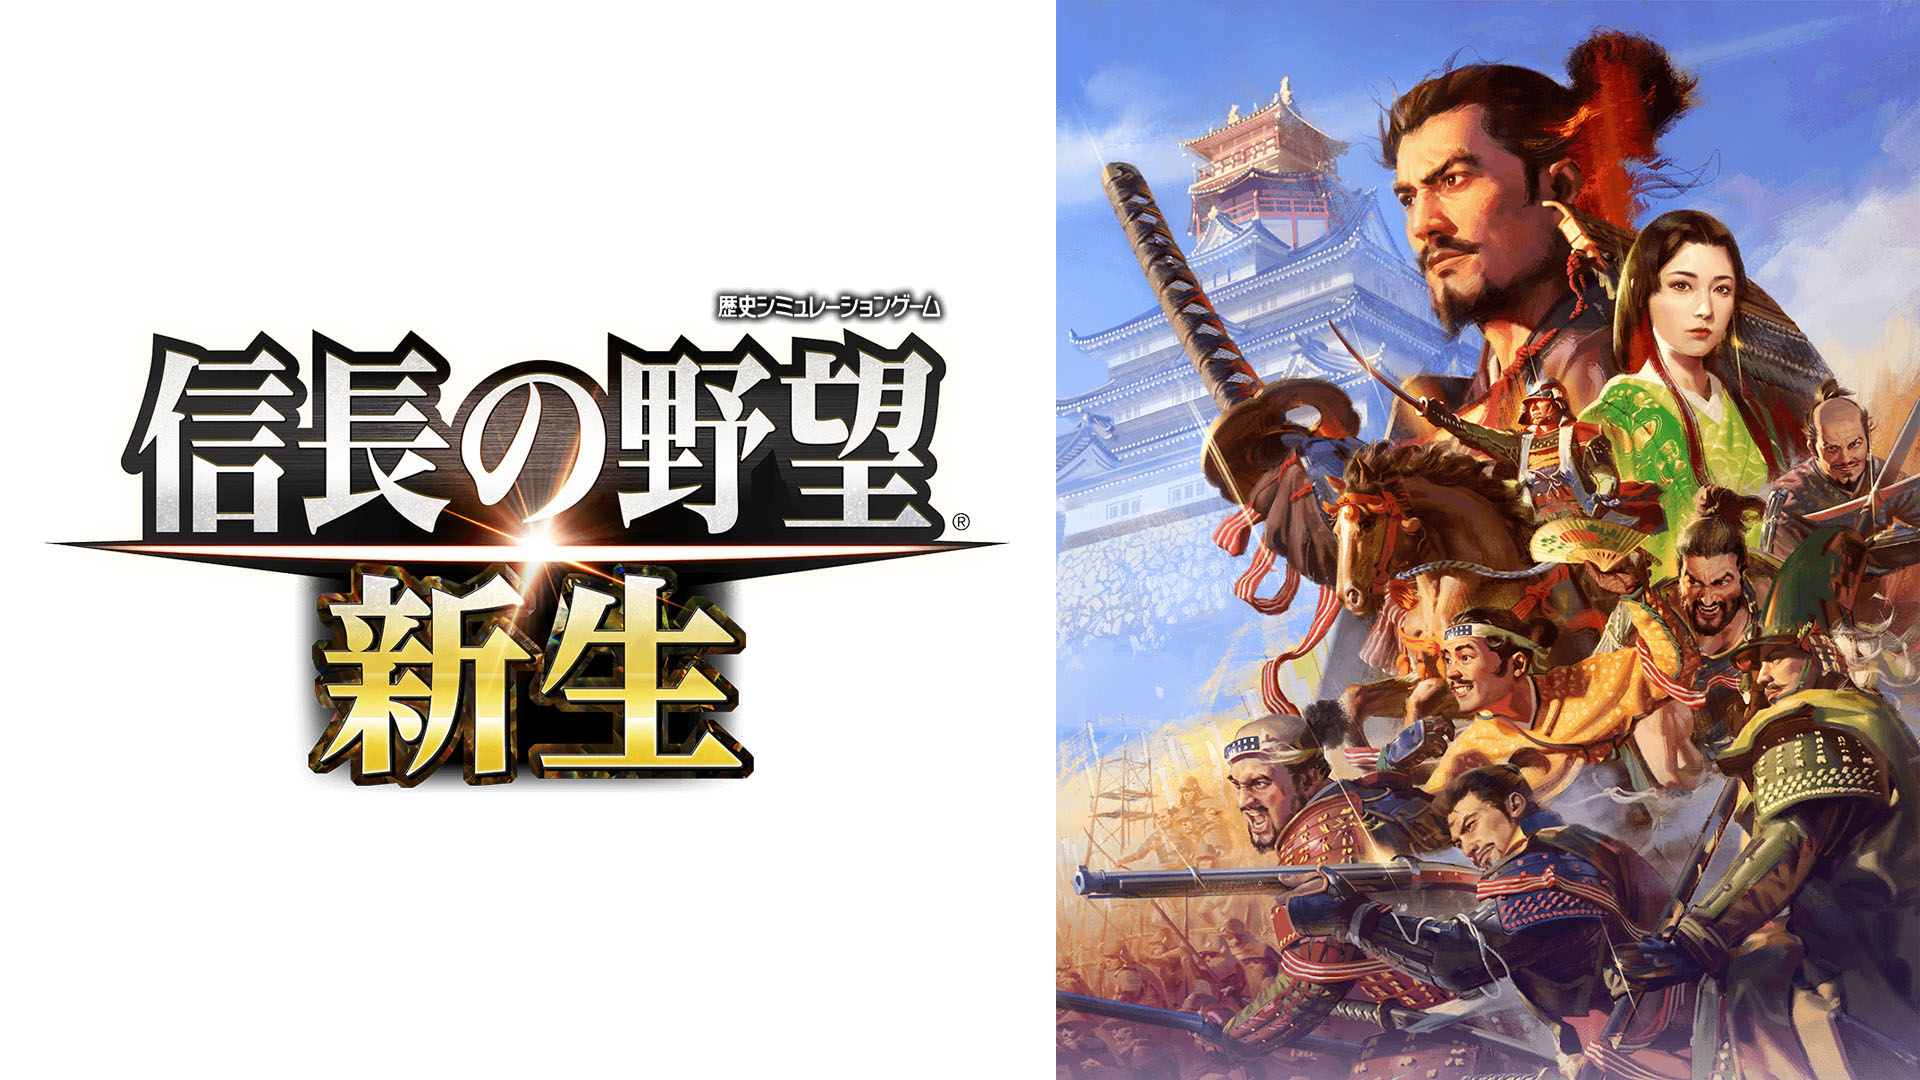 Nobunaga's Ambition: Shinsei Announced